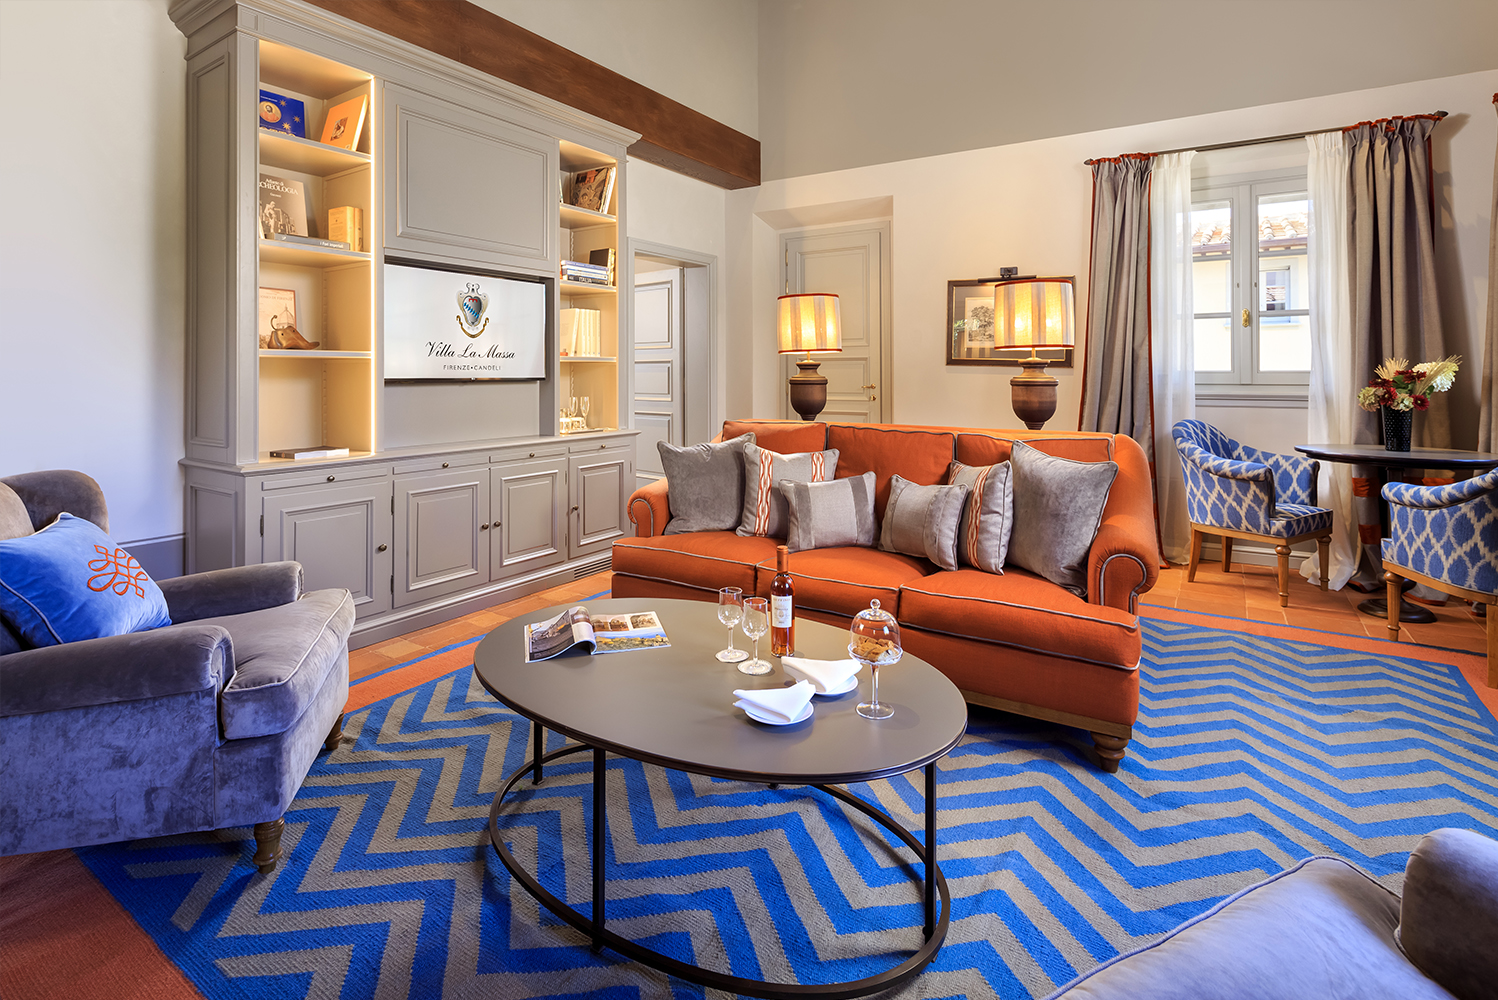 The designers used authentic terracotta, decorated hand-carved woods, and custom-made 100% natural handmade silk rugs that match with the earth tones.